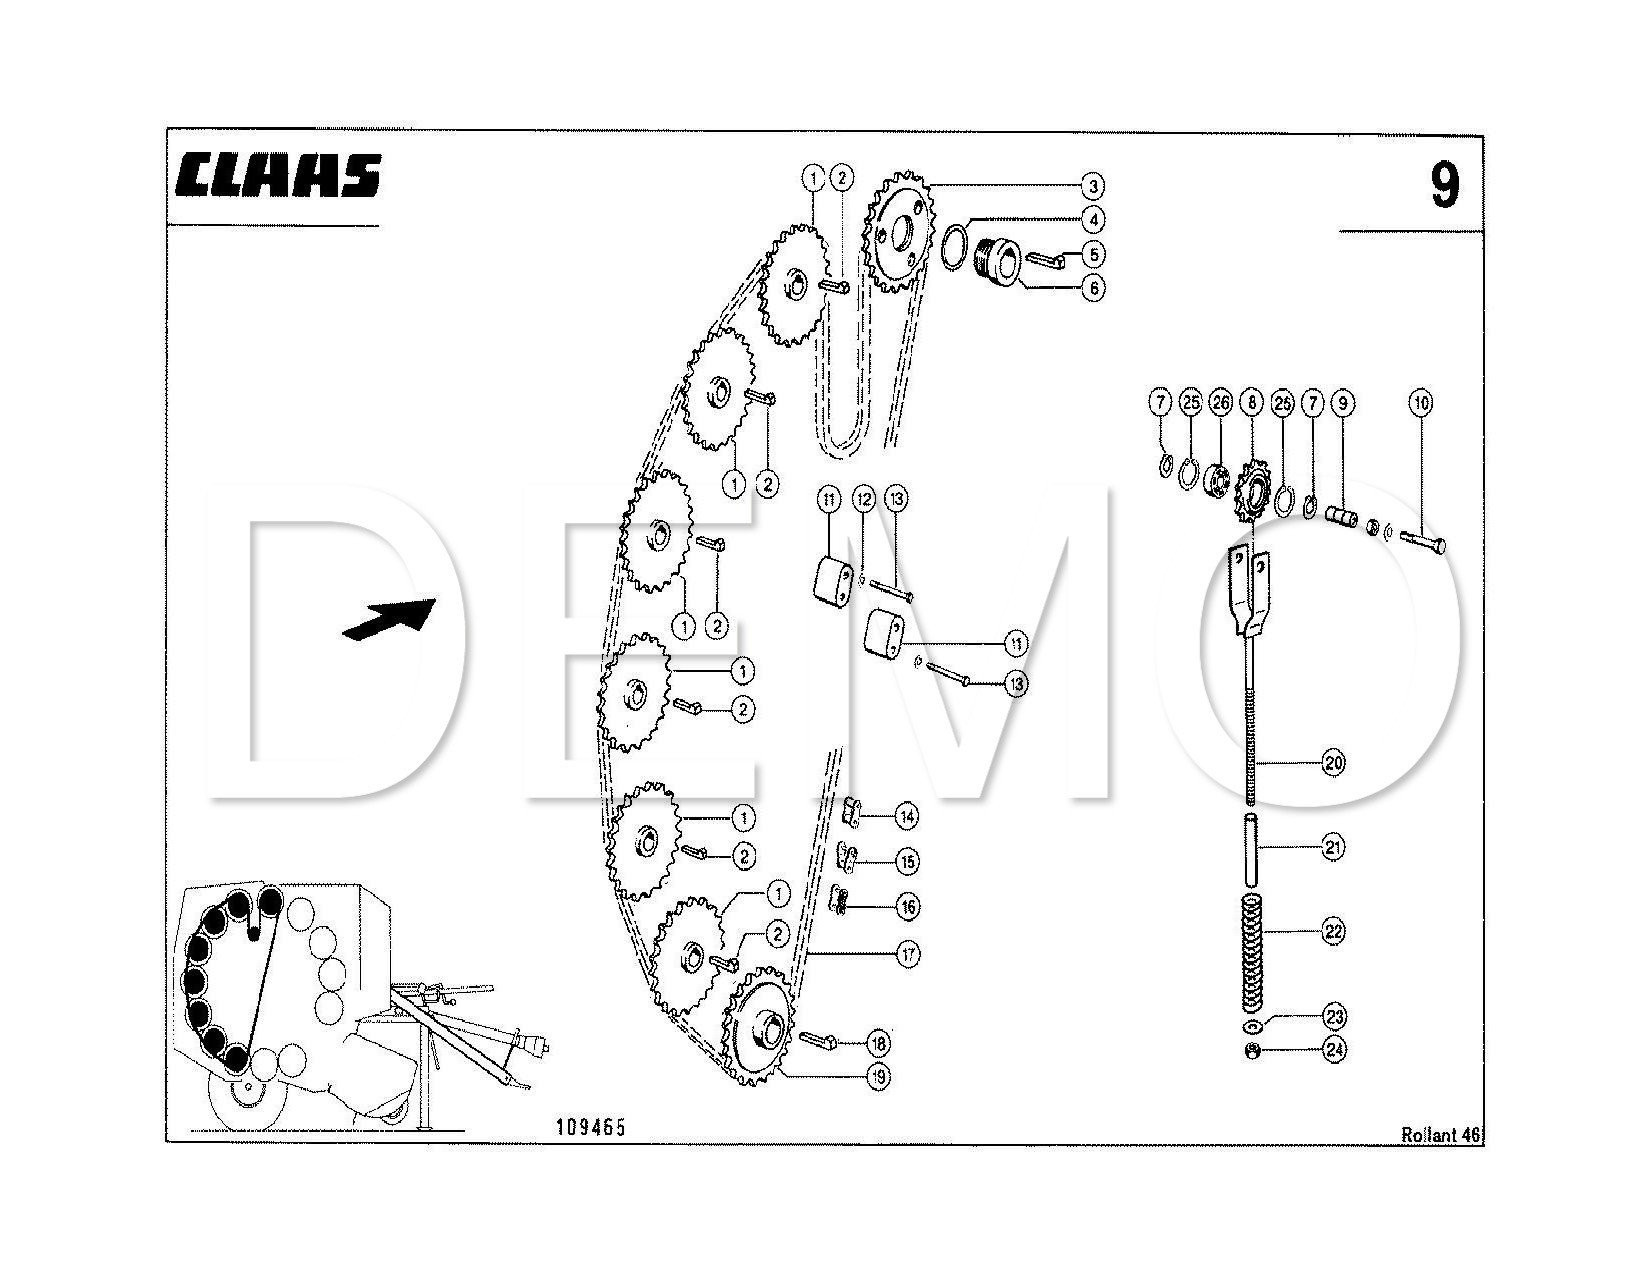 1999 Ford Escort Wiring Diagram from i0.wp.com